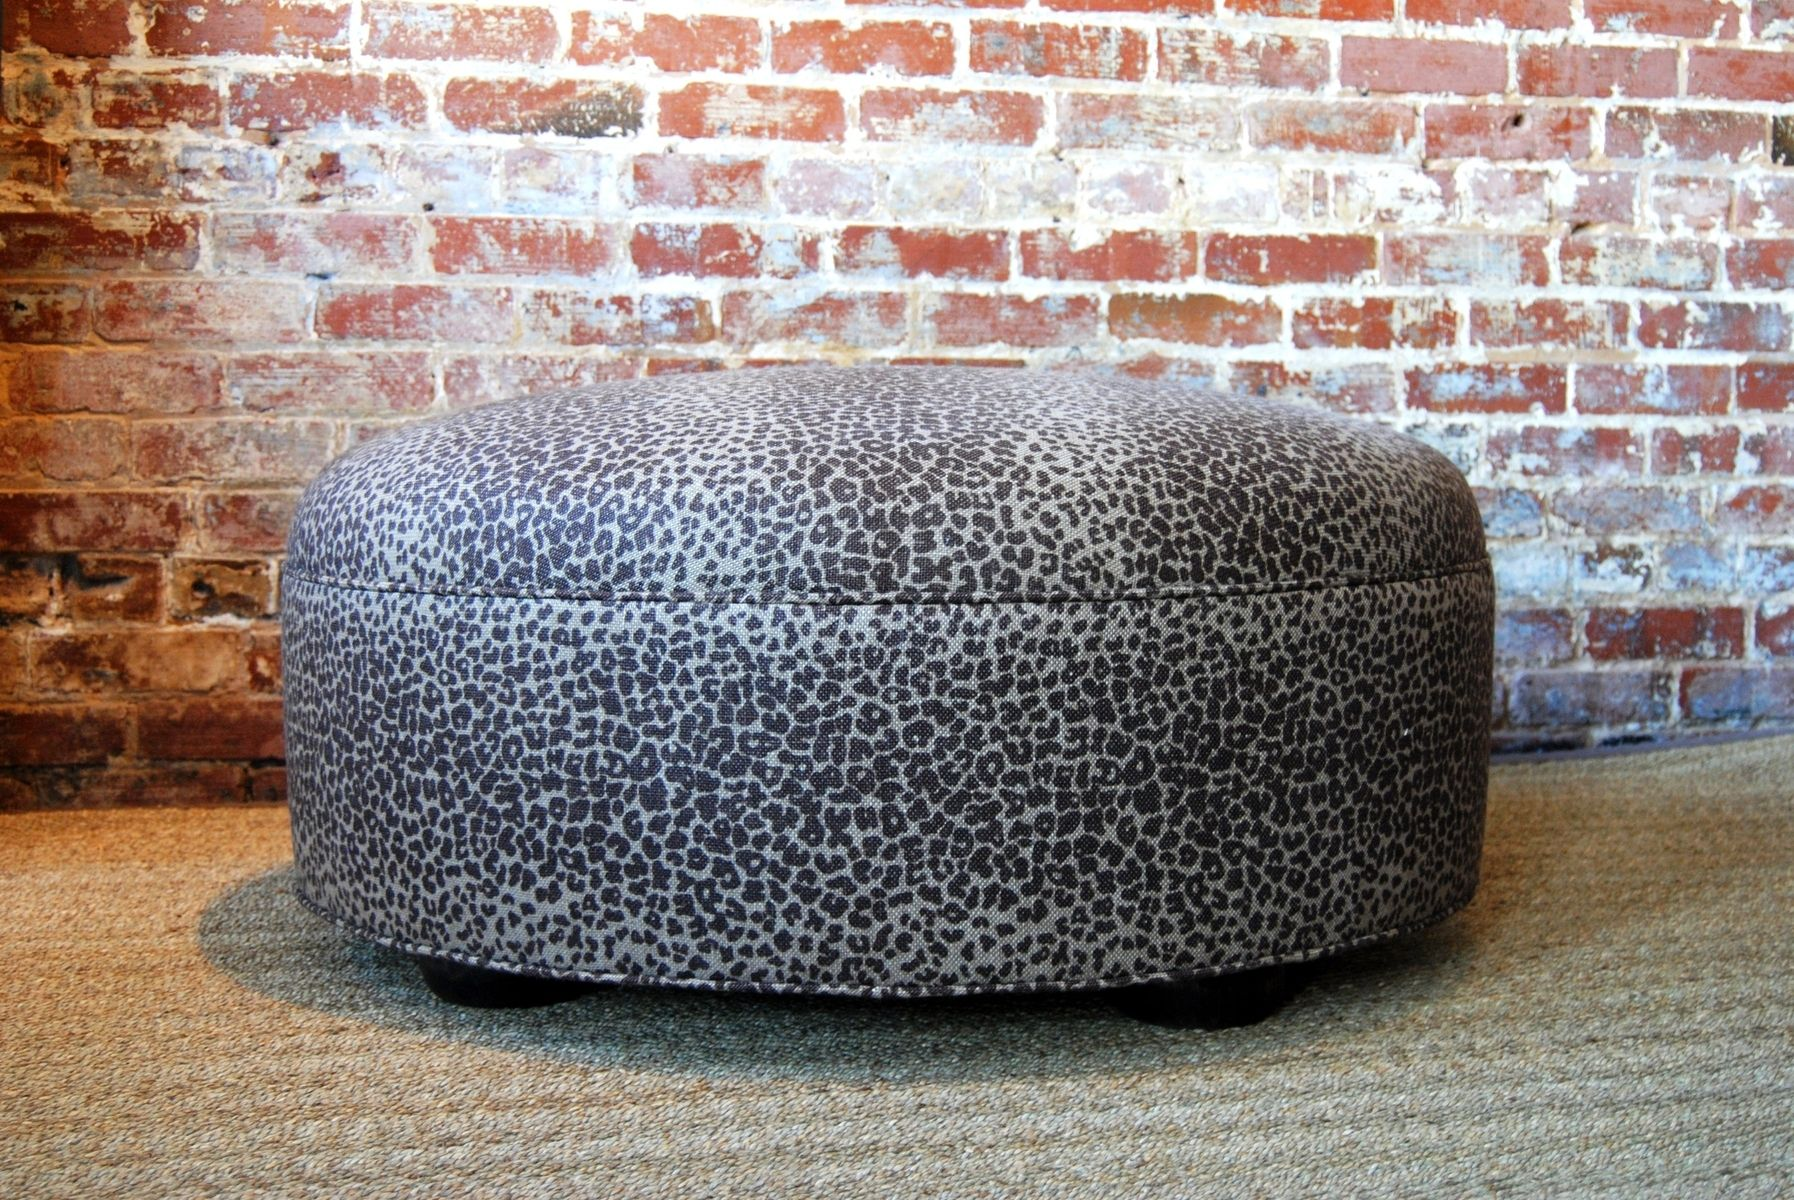 Custom Made Large Leopard Ottoman Coffee Table